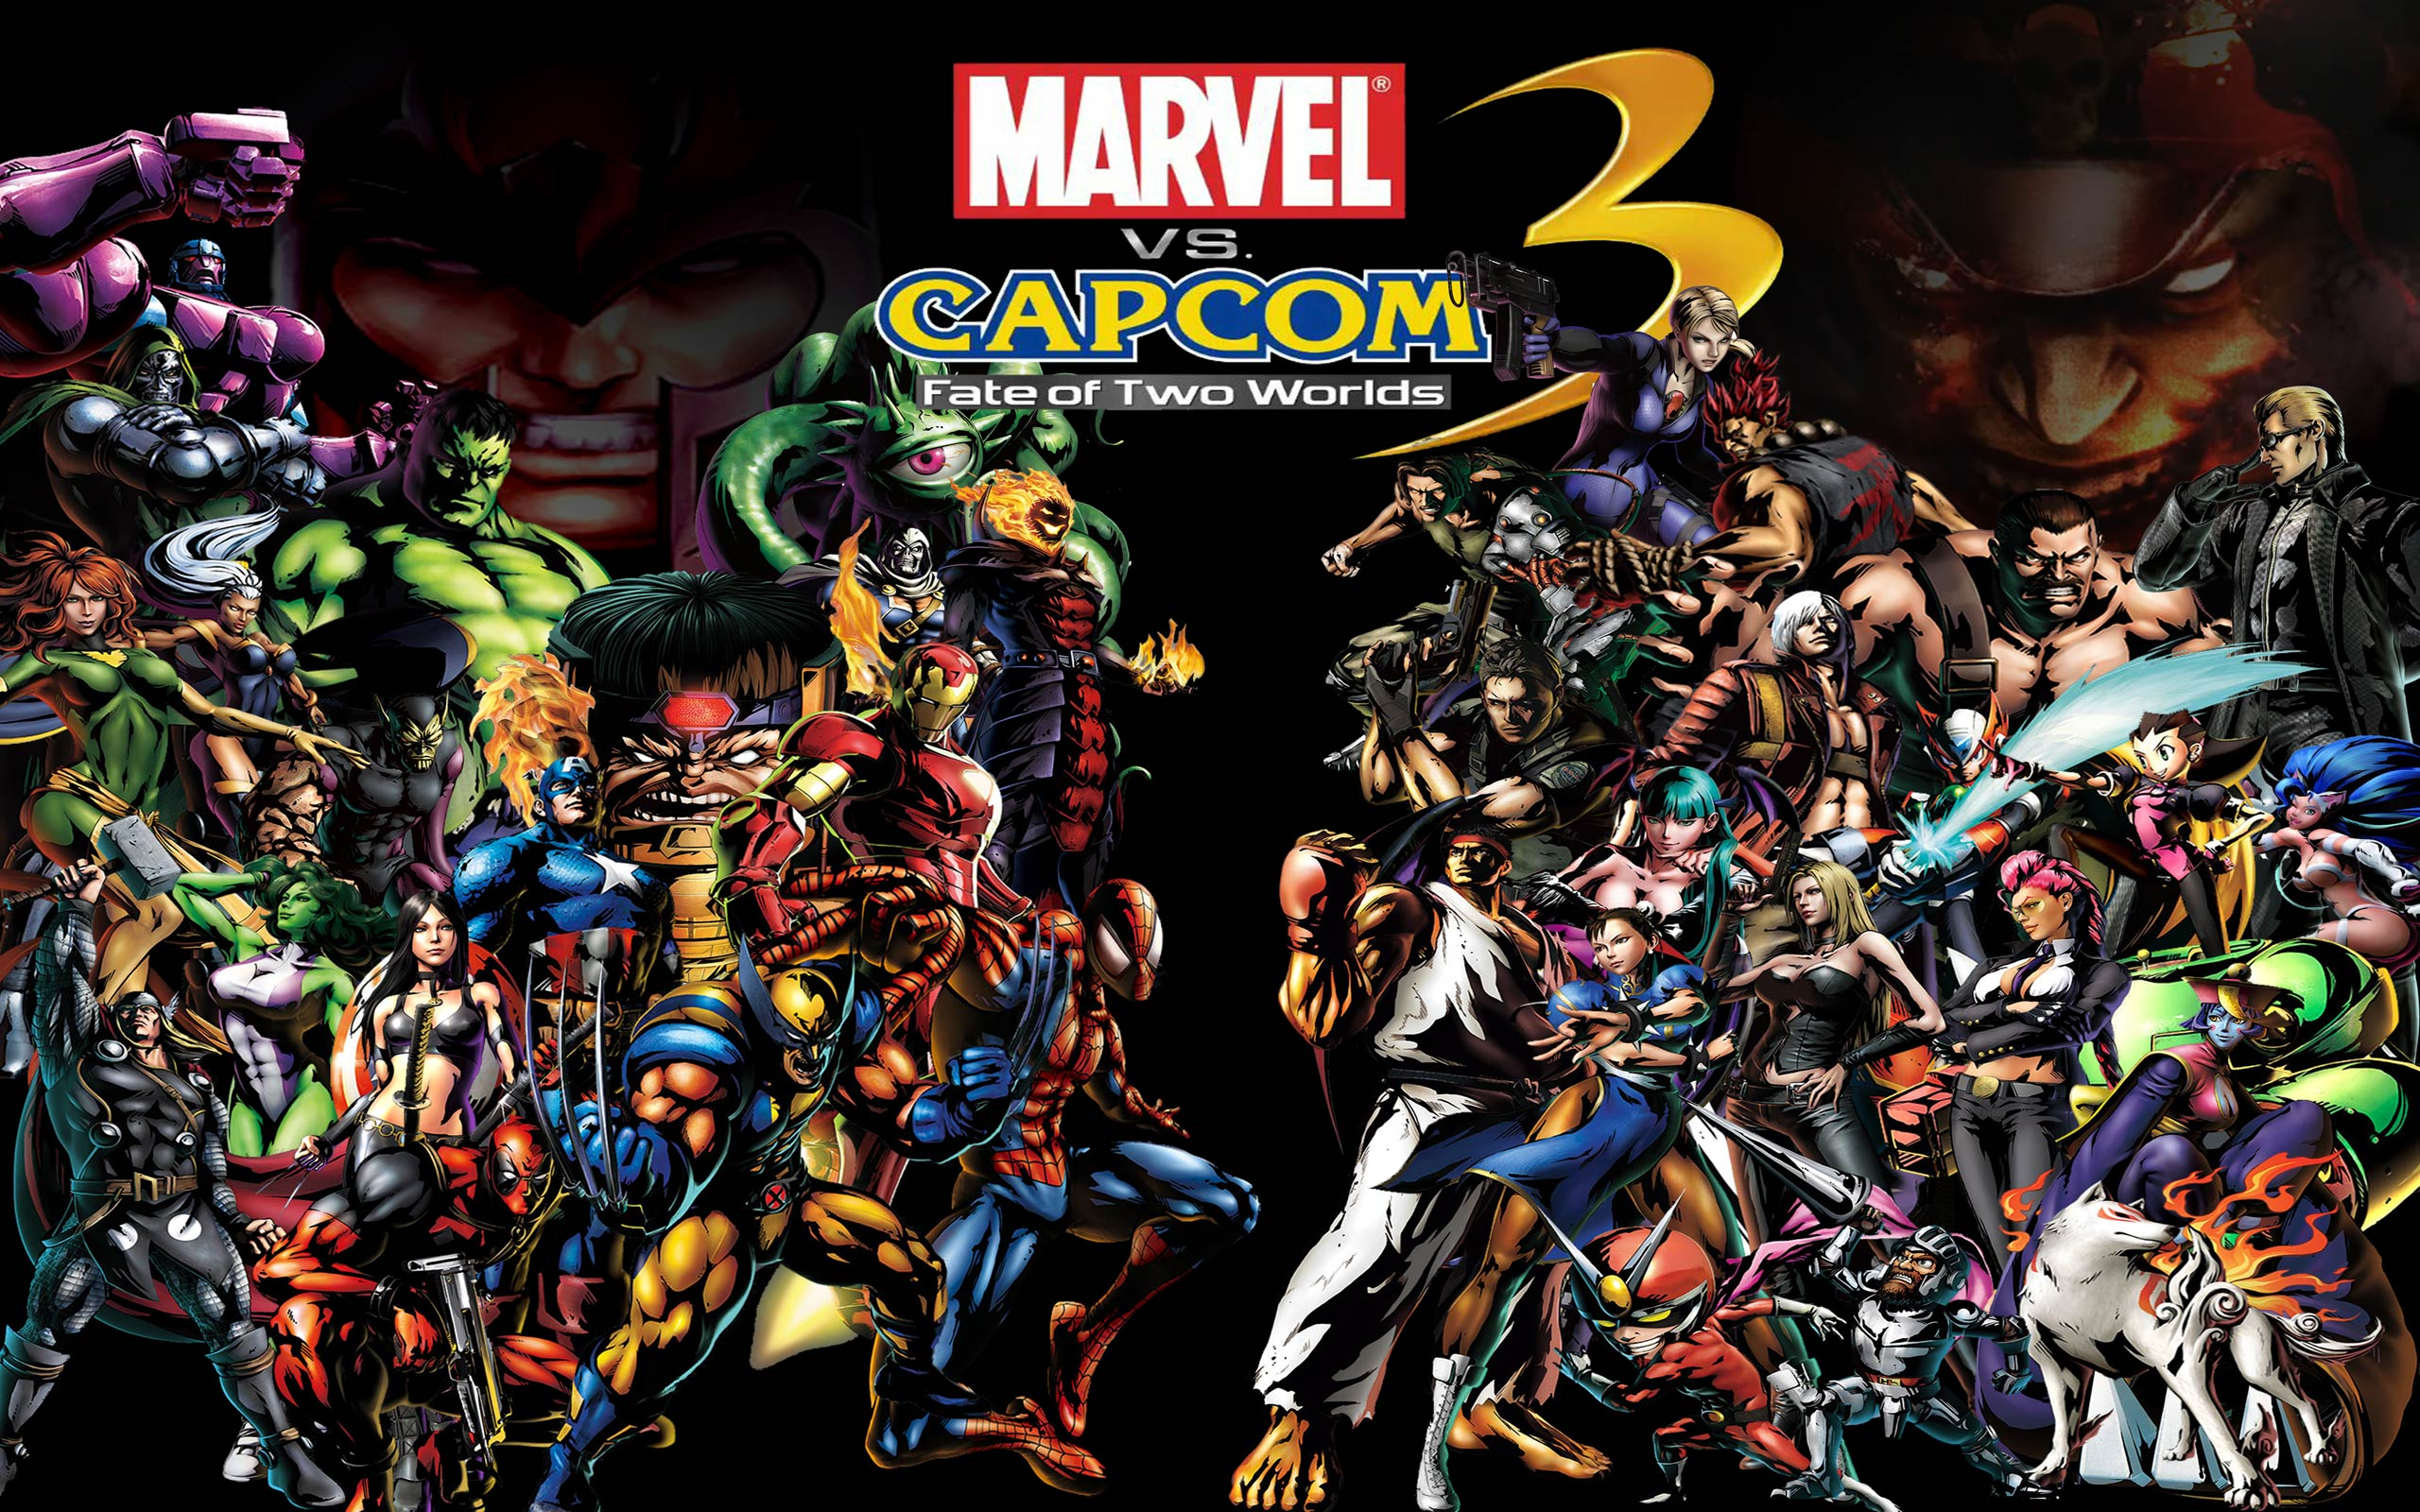 Free Download Mortal Kombat Vs Marvel Vs Capcom 3 El Ultimo